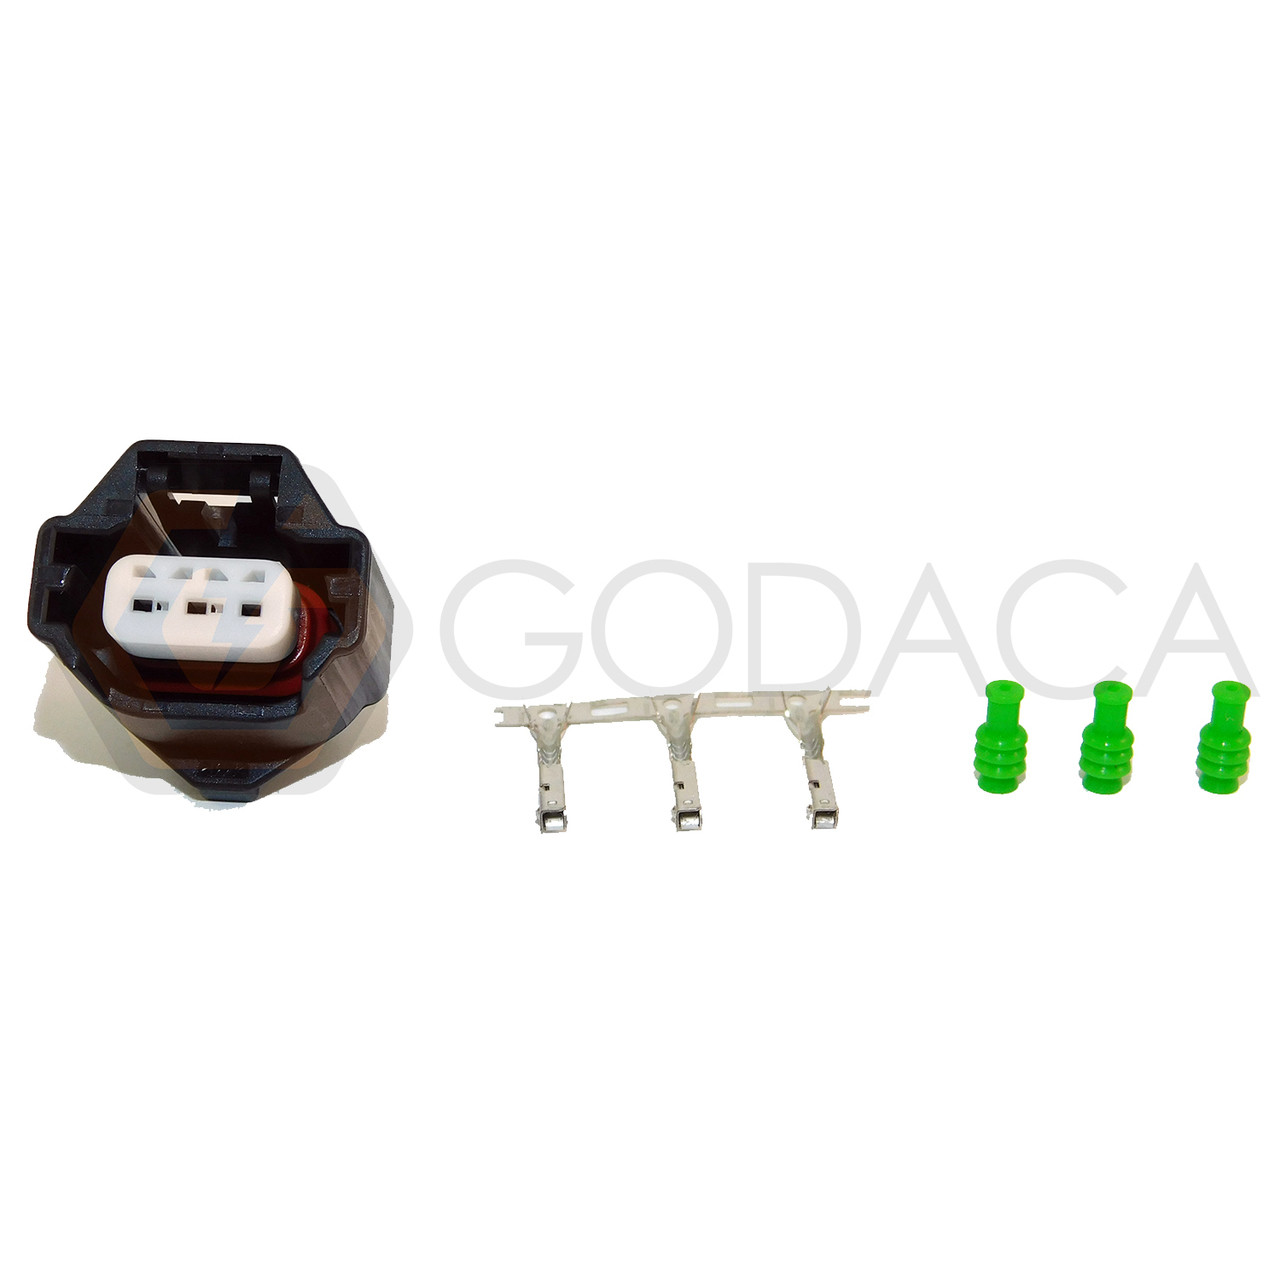 medium resolution of 1x connector 3 way 3 pin for camshaft position sensor cps cps0003 w out wire godaca llc